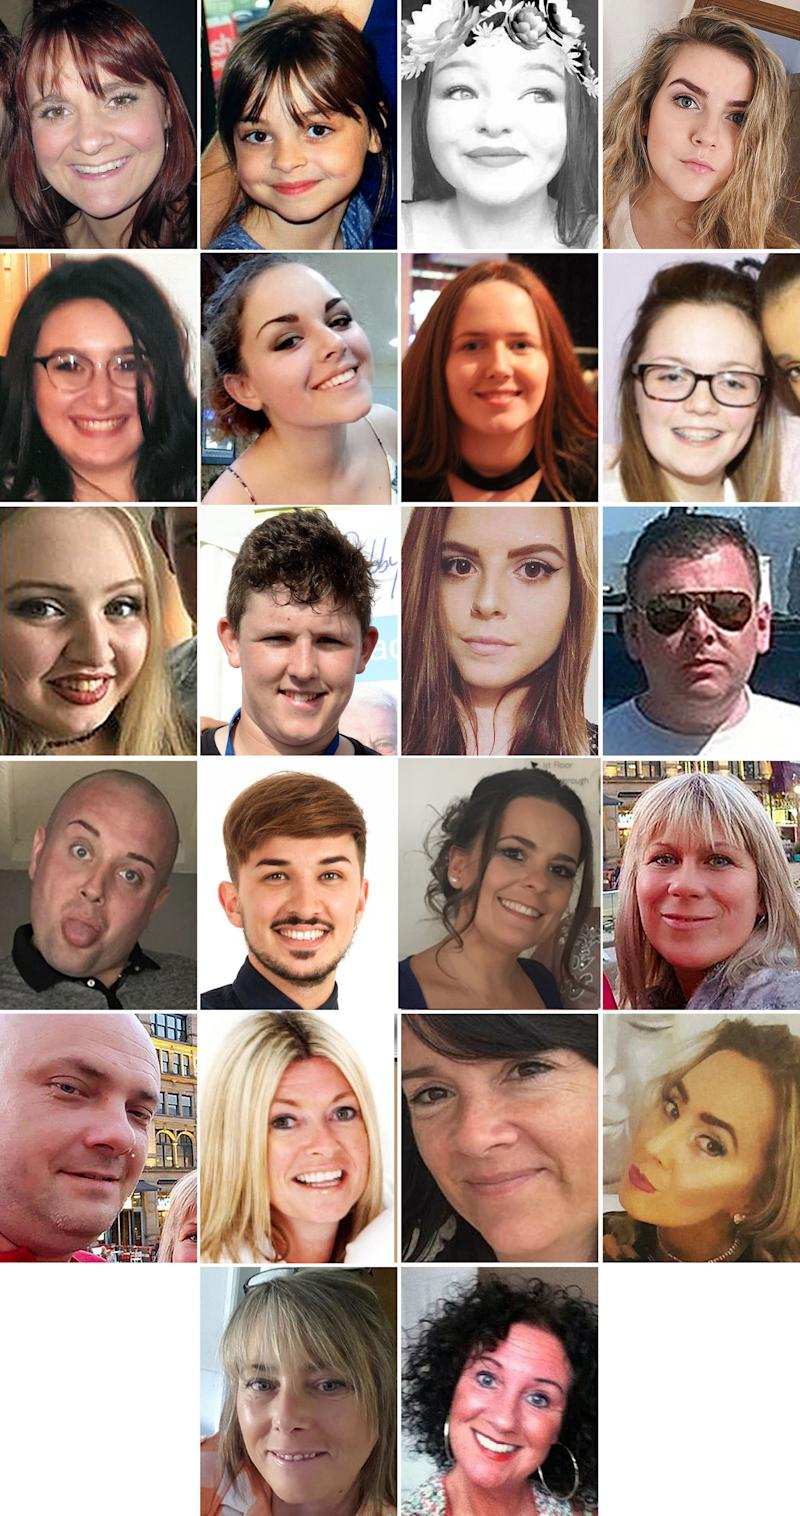 The 22 victims of the terror attack during the Ariana Grande concert at the Manchester Arena in May 2017. (top row left to right) Off-duty police officer Elaine McIver, 43, Saffie Roussos, 8, Sorrell Leczkowski, 14, Eilidh MacLeod, 14, (second row left to right) Nell Jones, 14, Olivia Campbell-Hardy, 15, Megan Hurley, 15, Georgina Callander, 18, (third row left to right), Chloe Rutherford,17, Liam Curry, 19, Courtney Boyle, 19, and Philip Tron, 32, (fourth row left to right) John Atkinson, 26, Martyn Hett, 29, Kelly Brewster, 32, Angelika Klis, 39, (fifth row left to right) Marcin Klis, 42, Michelle Kiss, 45, Alison Howe, 45, and Lisa Lees, 43 (fifth row left to right) Wendy Fawell, 50 and Jane Tweddle, 51.